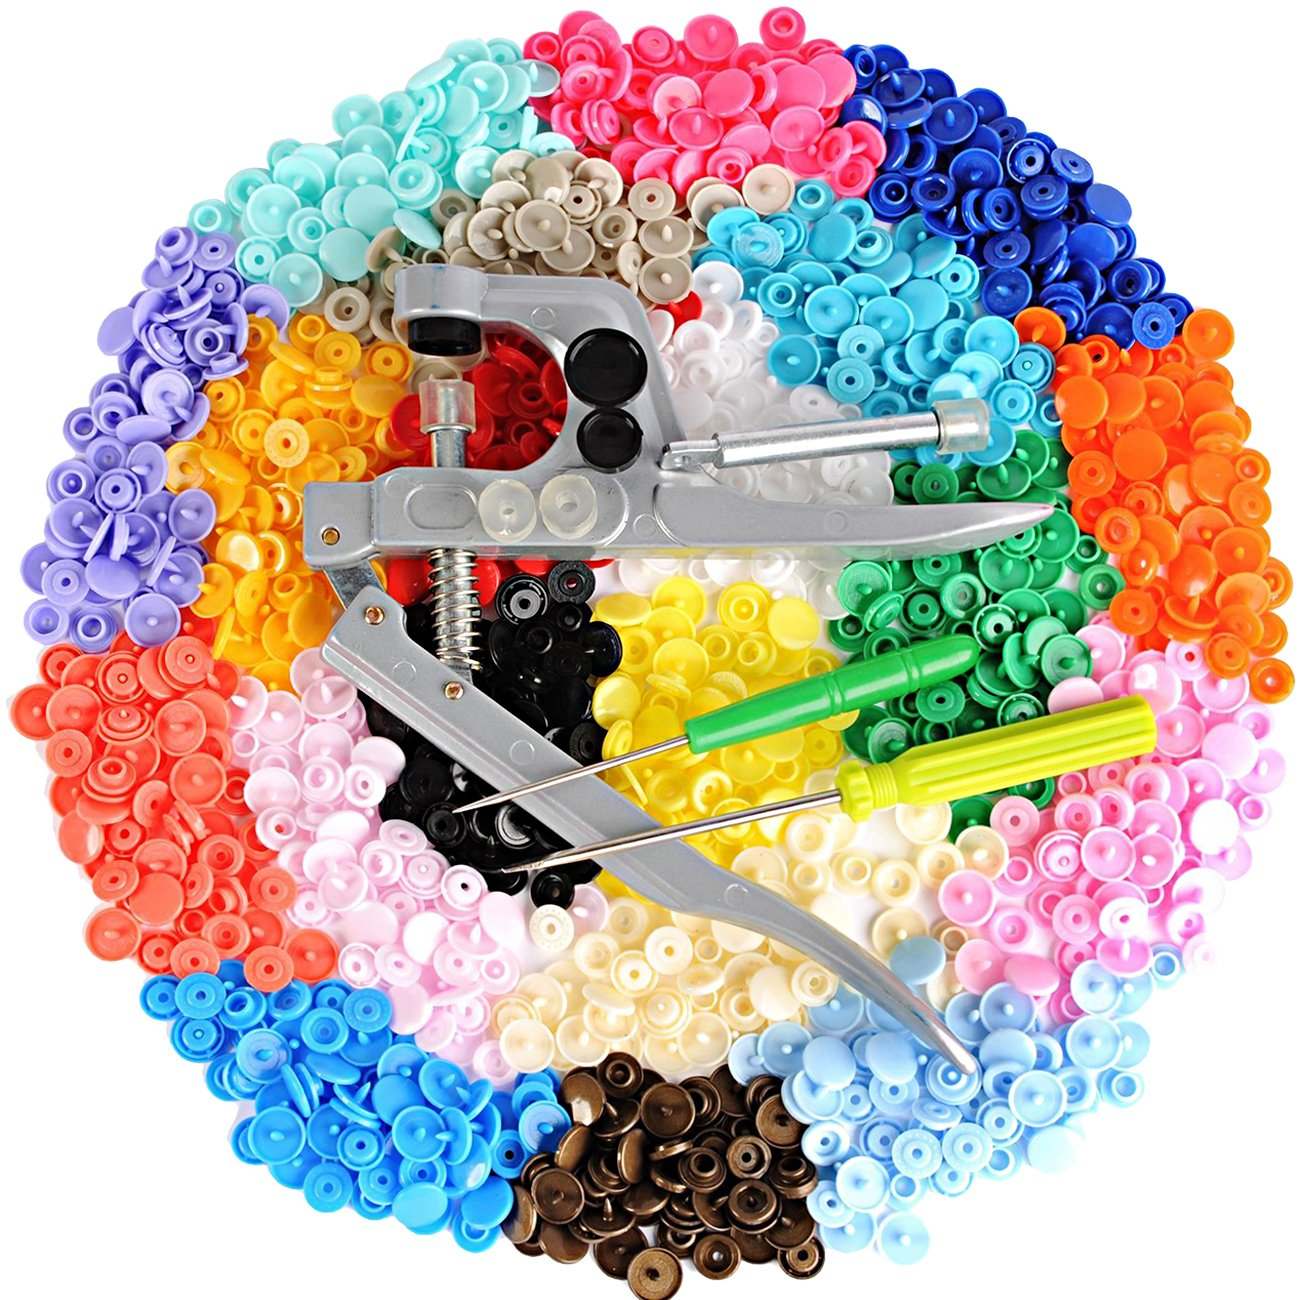 LIHAO 360 Sets T5 Snaps Fastener Craft Buttons for Fabric Cloth Diaper